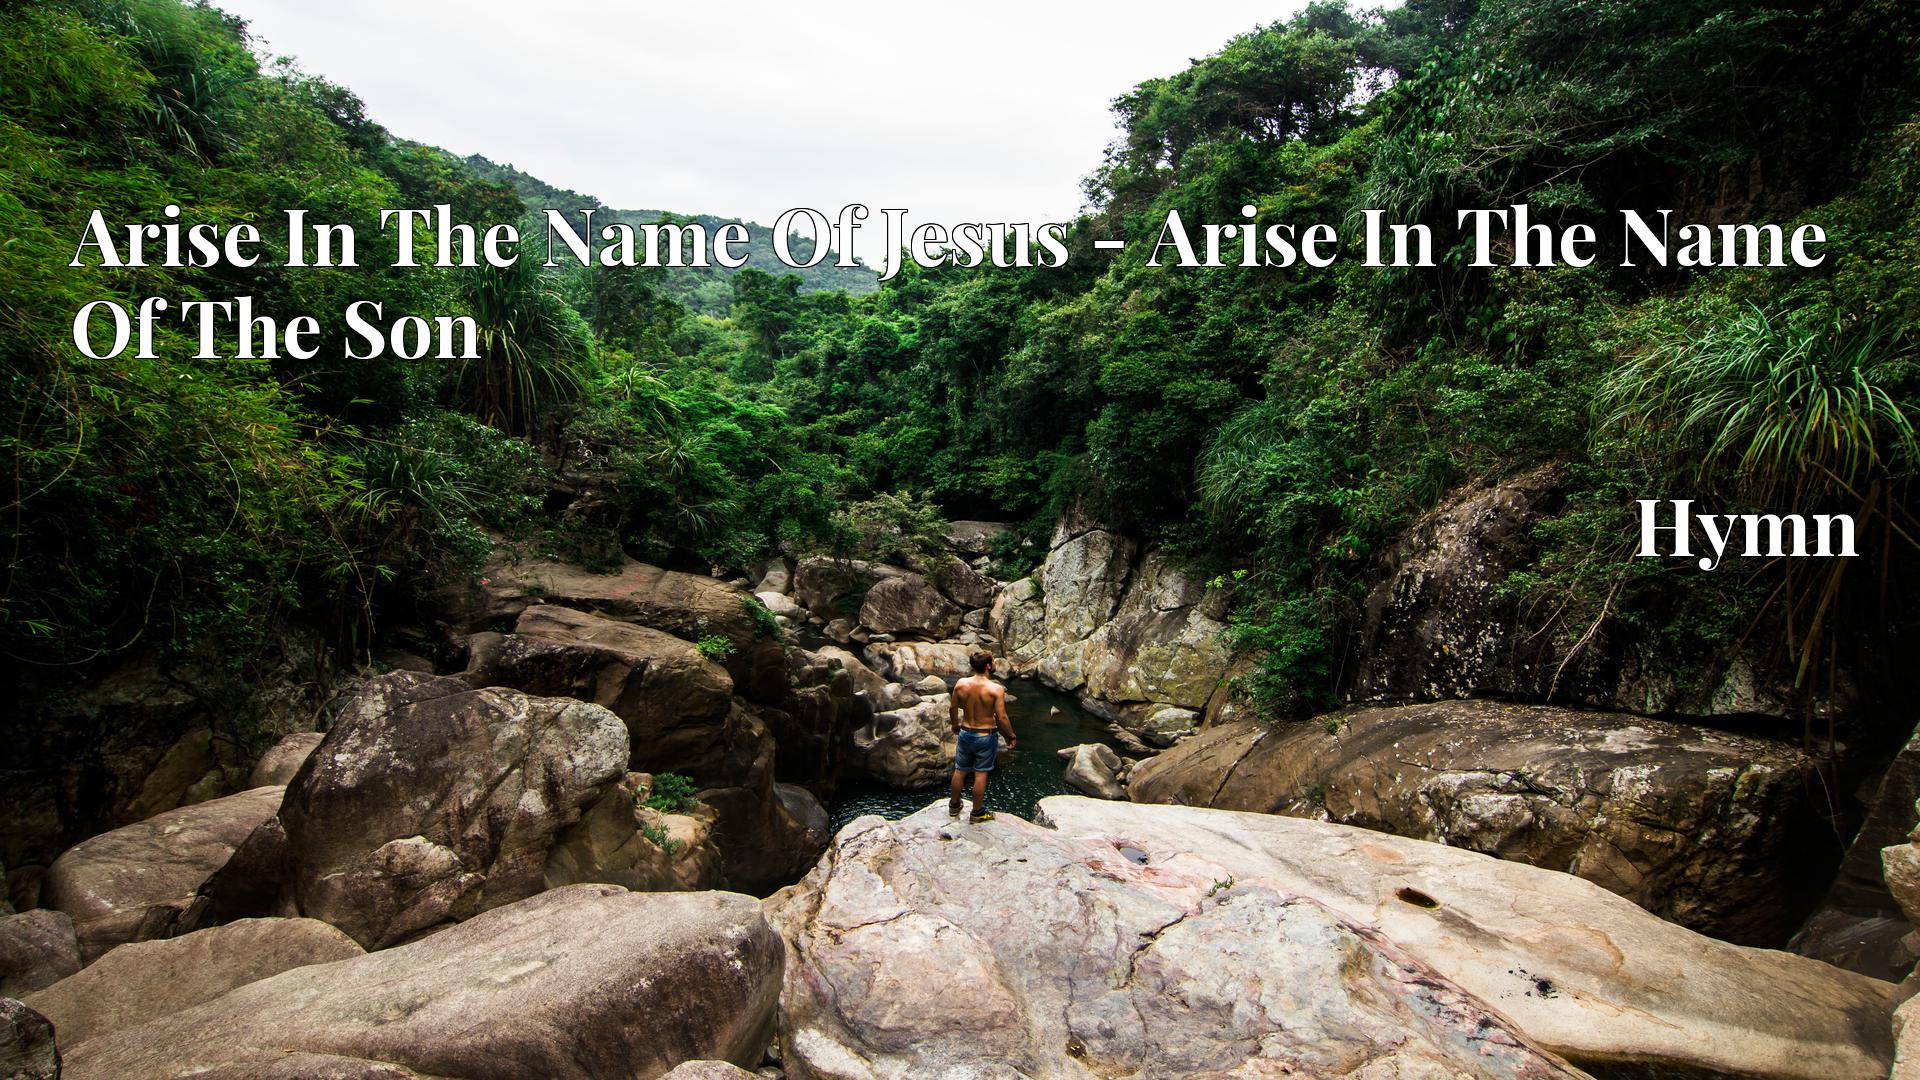 Arise In The Name Of Jesus - Arise In The Name Of The Son - Hymn